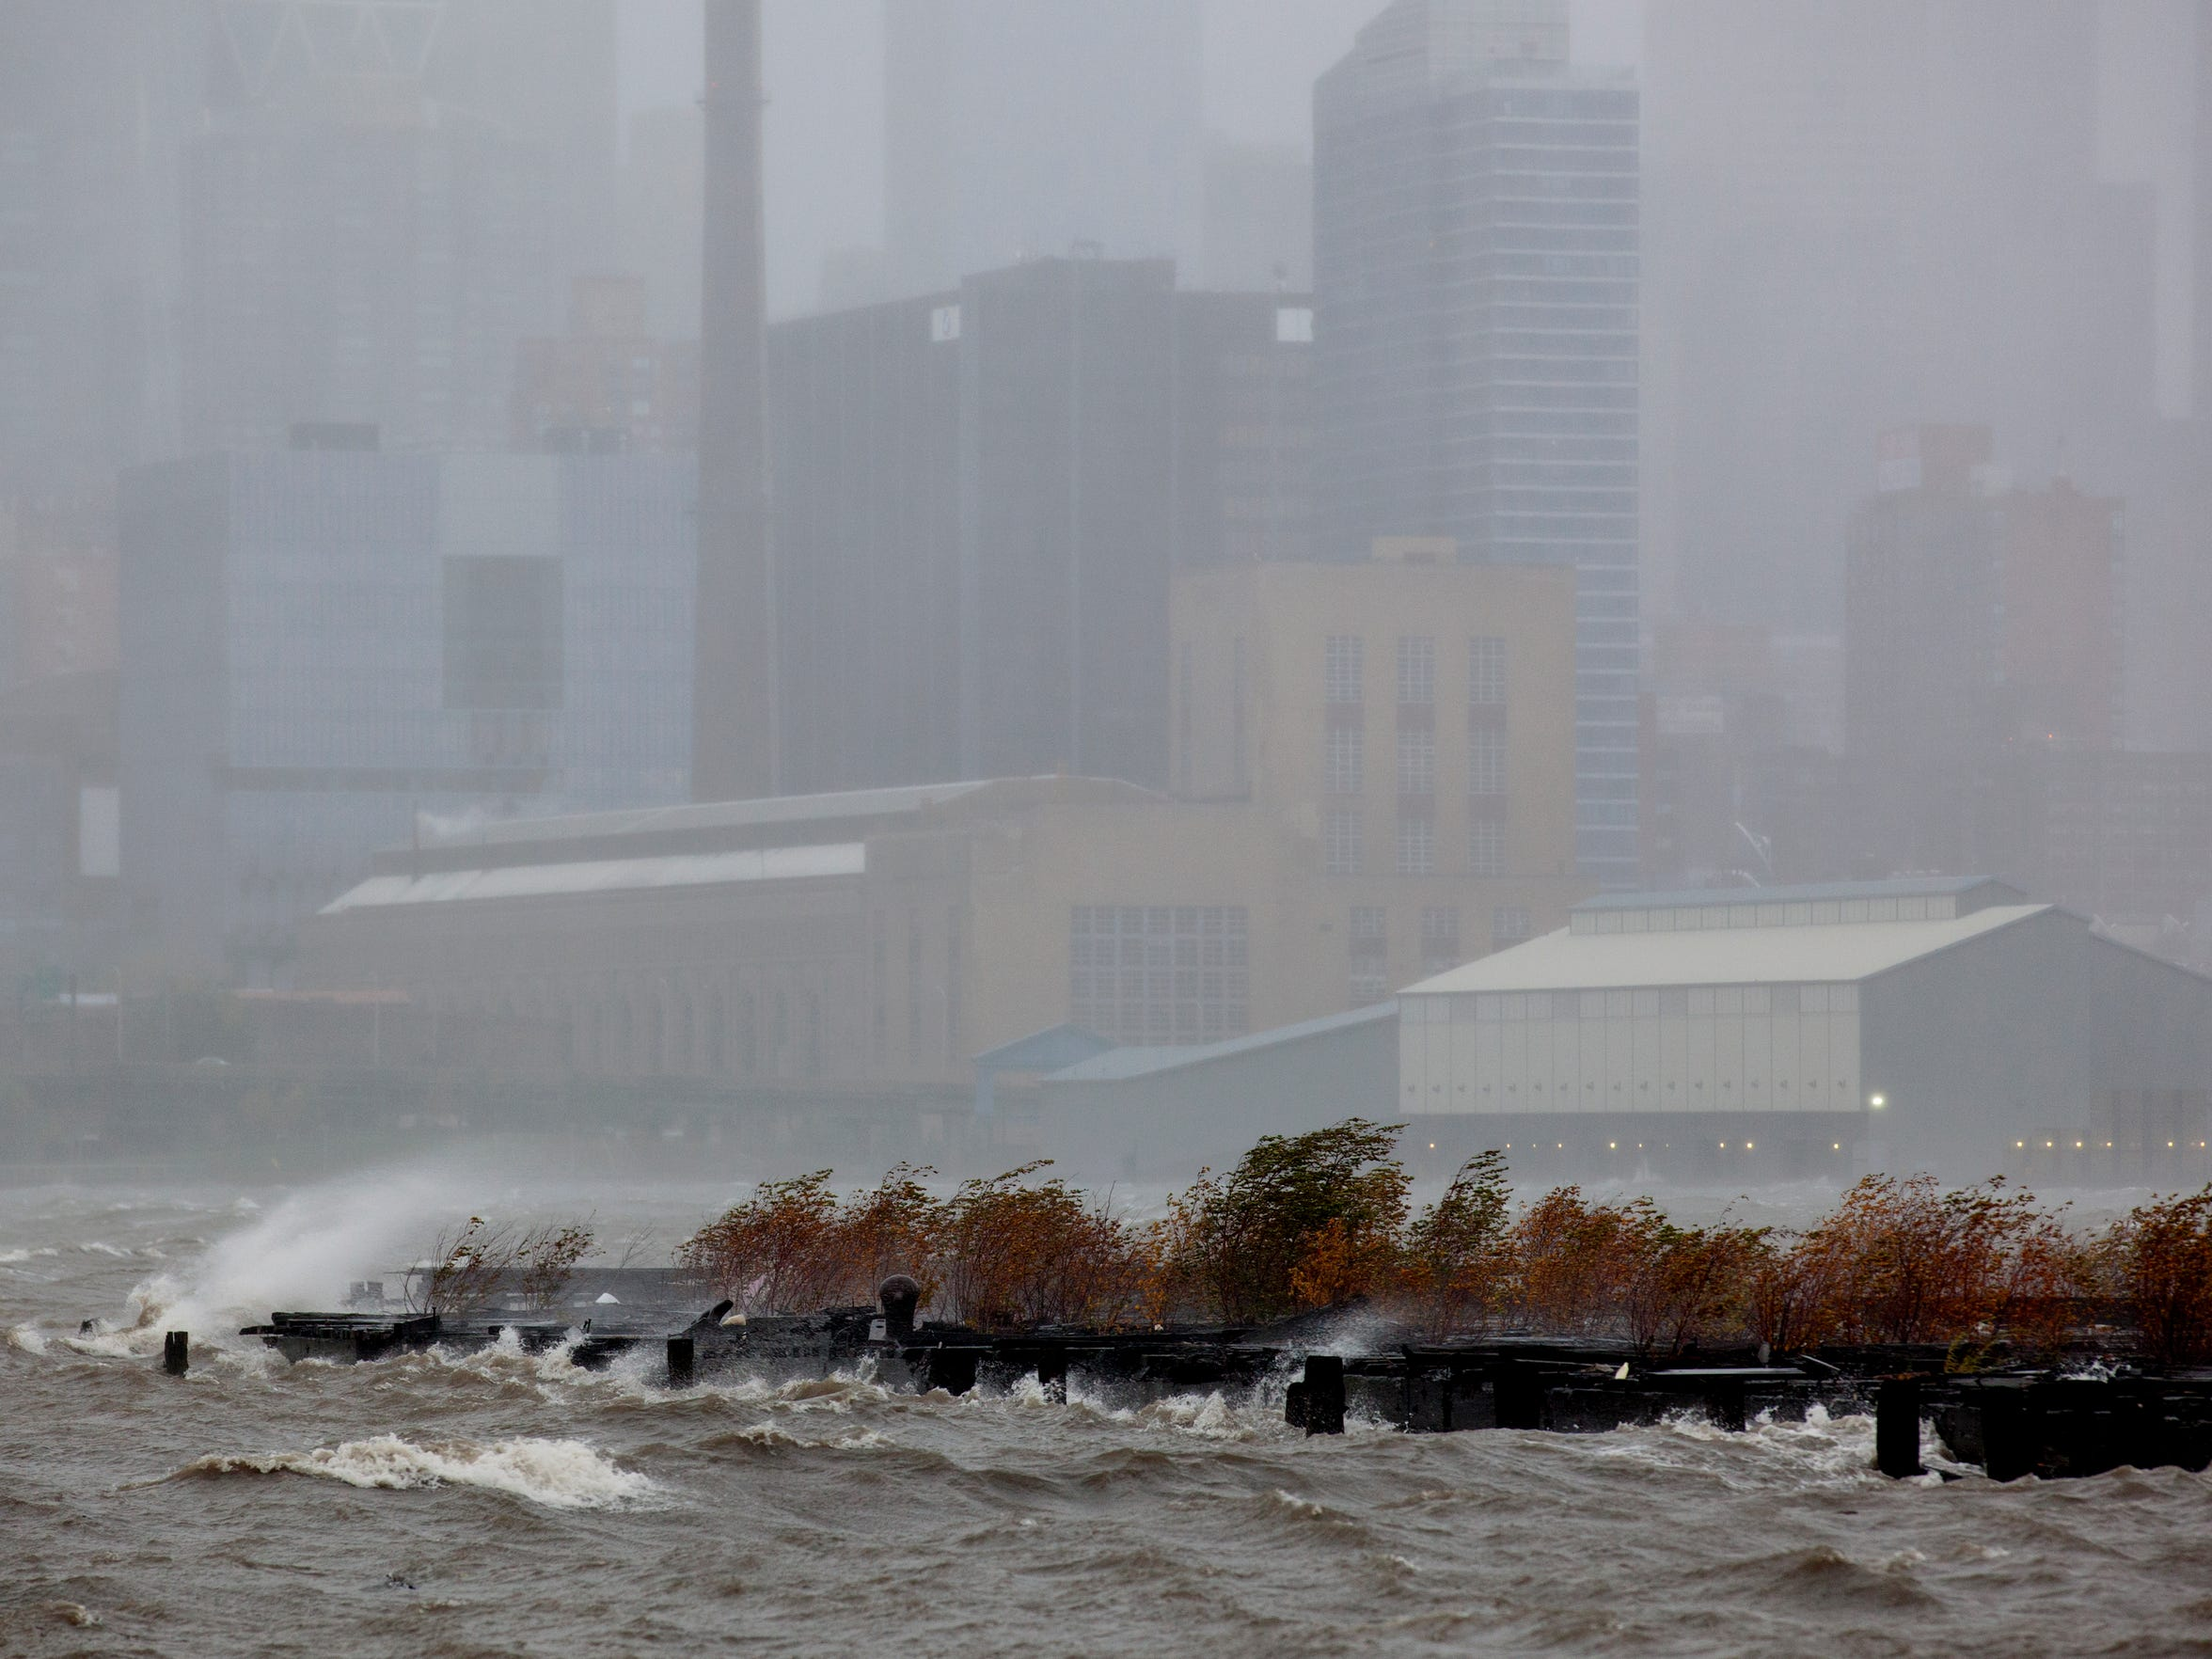 Wind-blown mist from the Hudson River, along with driving rain in West New York, N.J., fills the air on Oct. 29, 2012 as Hurricane Sandy lashes the East Coast. Manhattan is visible in the background.